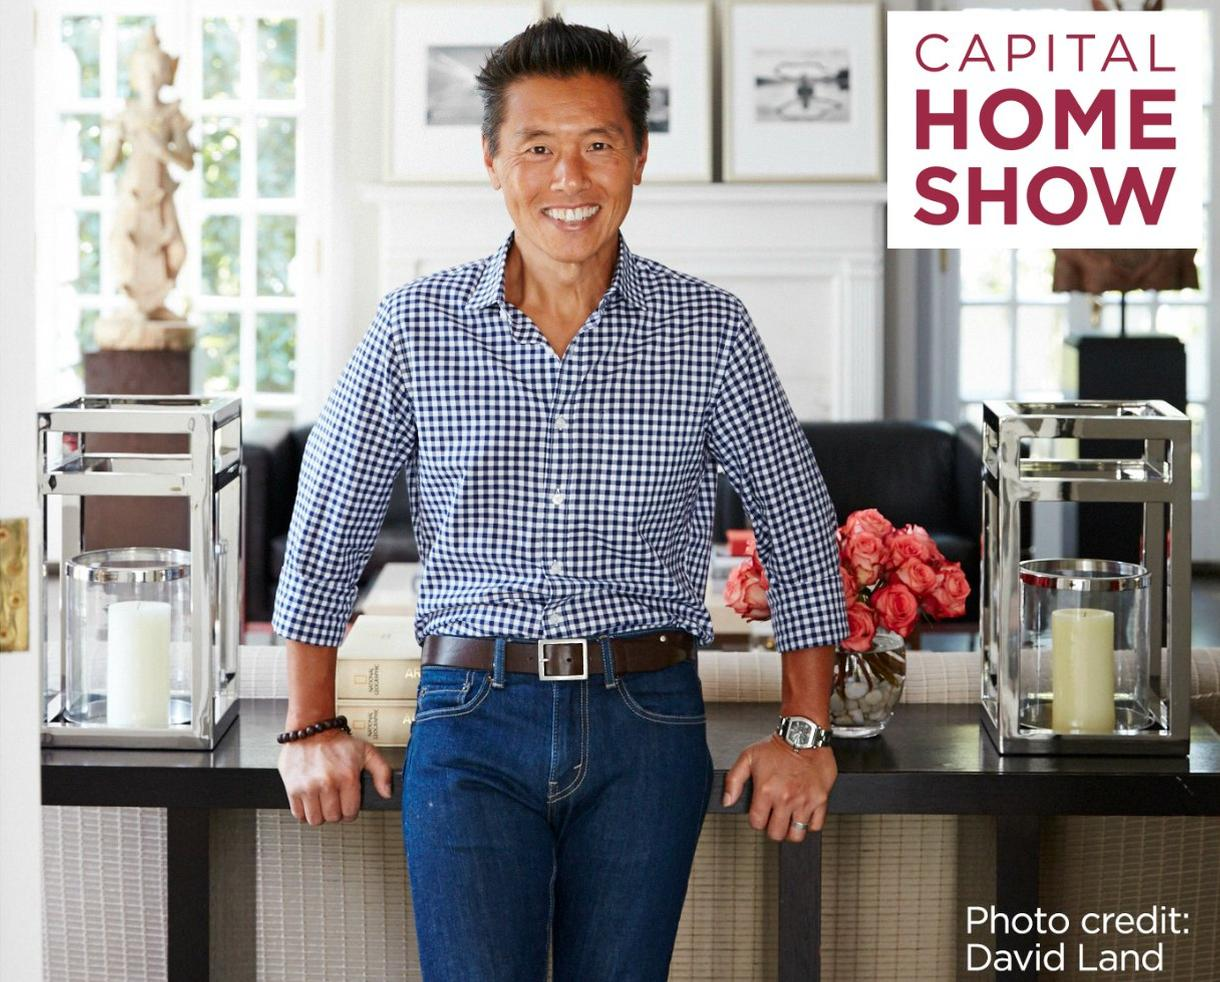 Capital Home Show featuring TLC's Vern Yip from Trading Spaces at Dulles Expo Center